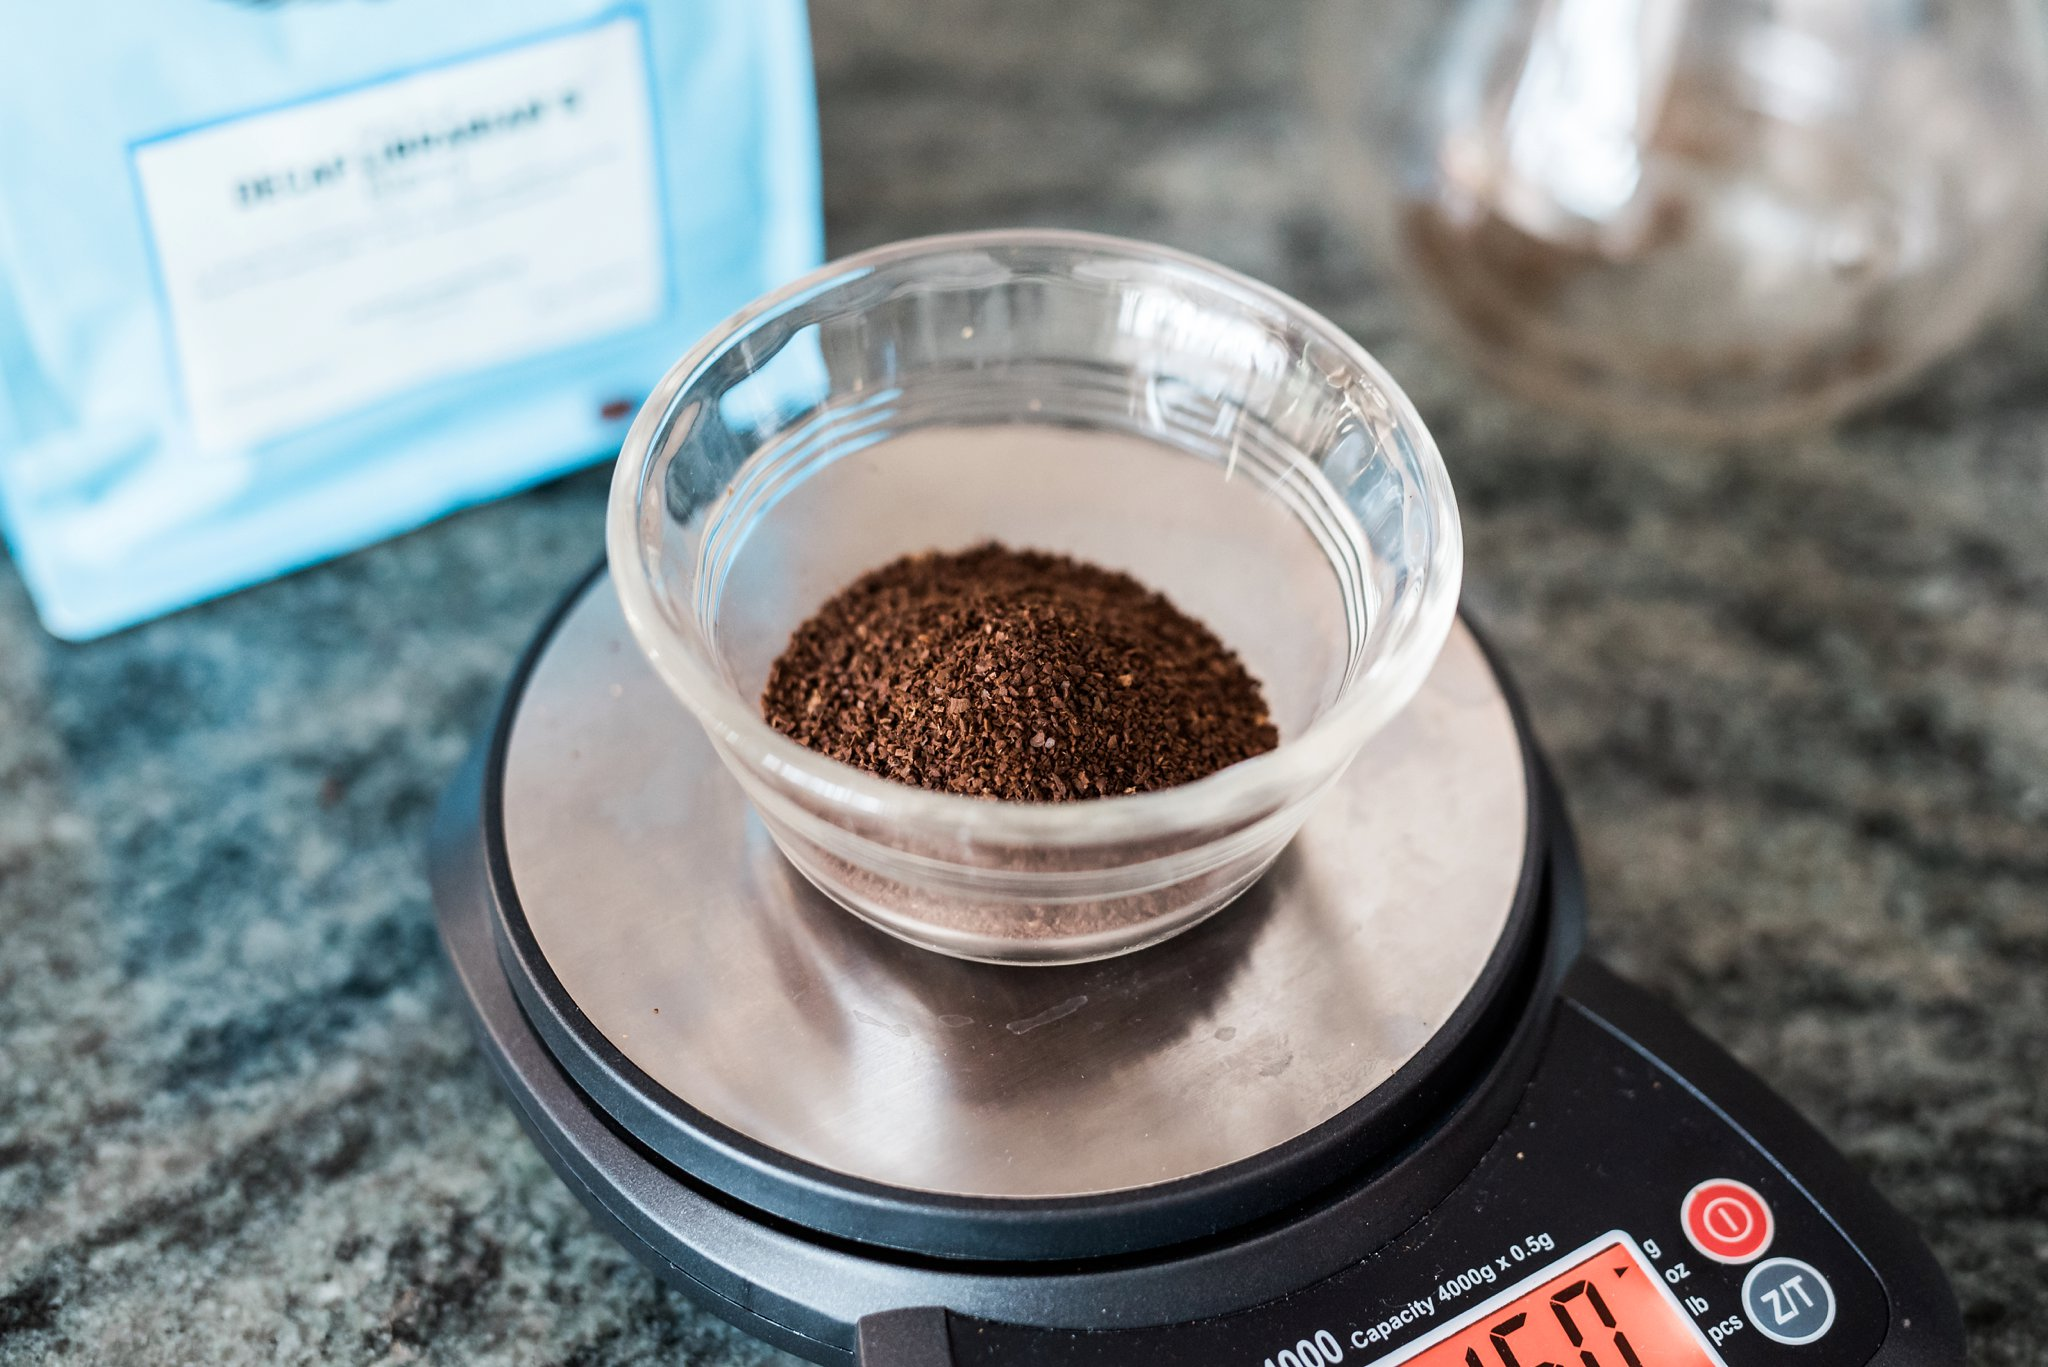 Once the beans are ground, you then will place the coffee in the filter and take the boiled water and pour slowly over the grounds. After the correct amount of water is poured it is complete and ready to enjoy.